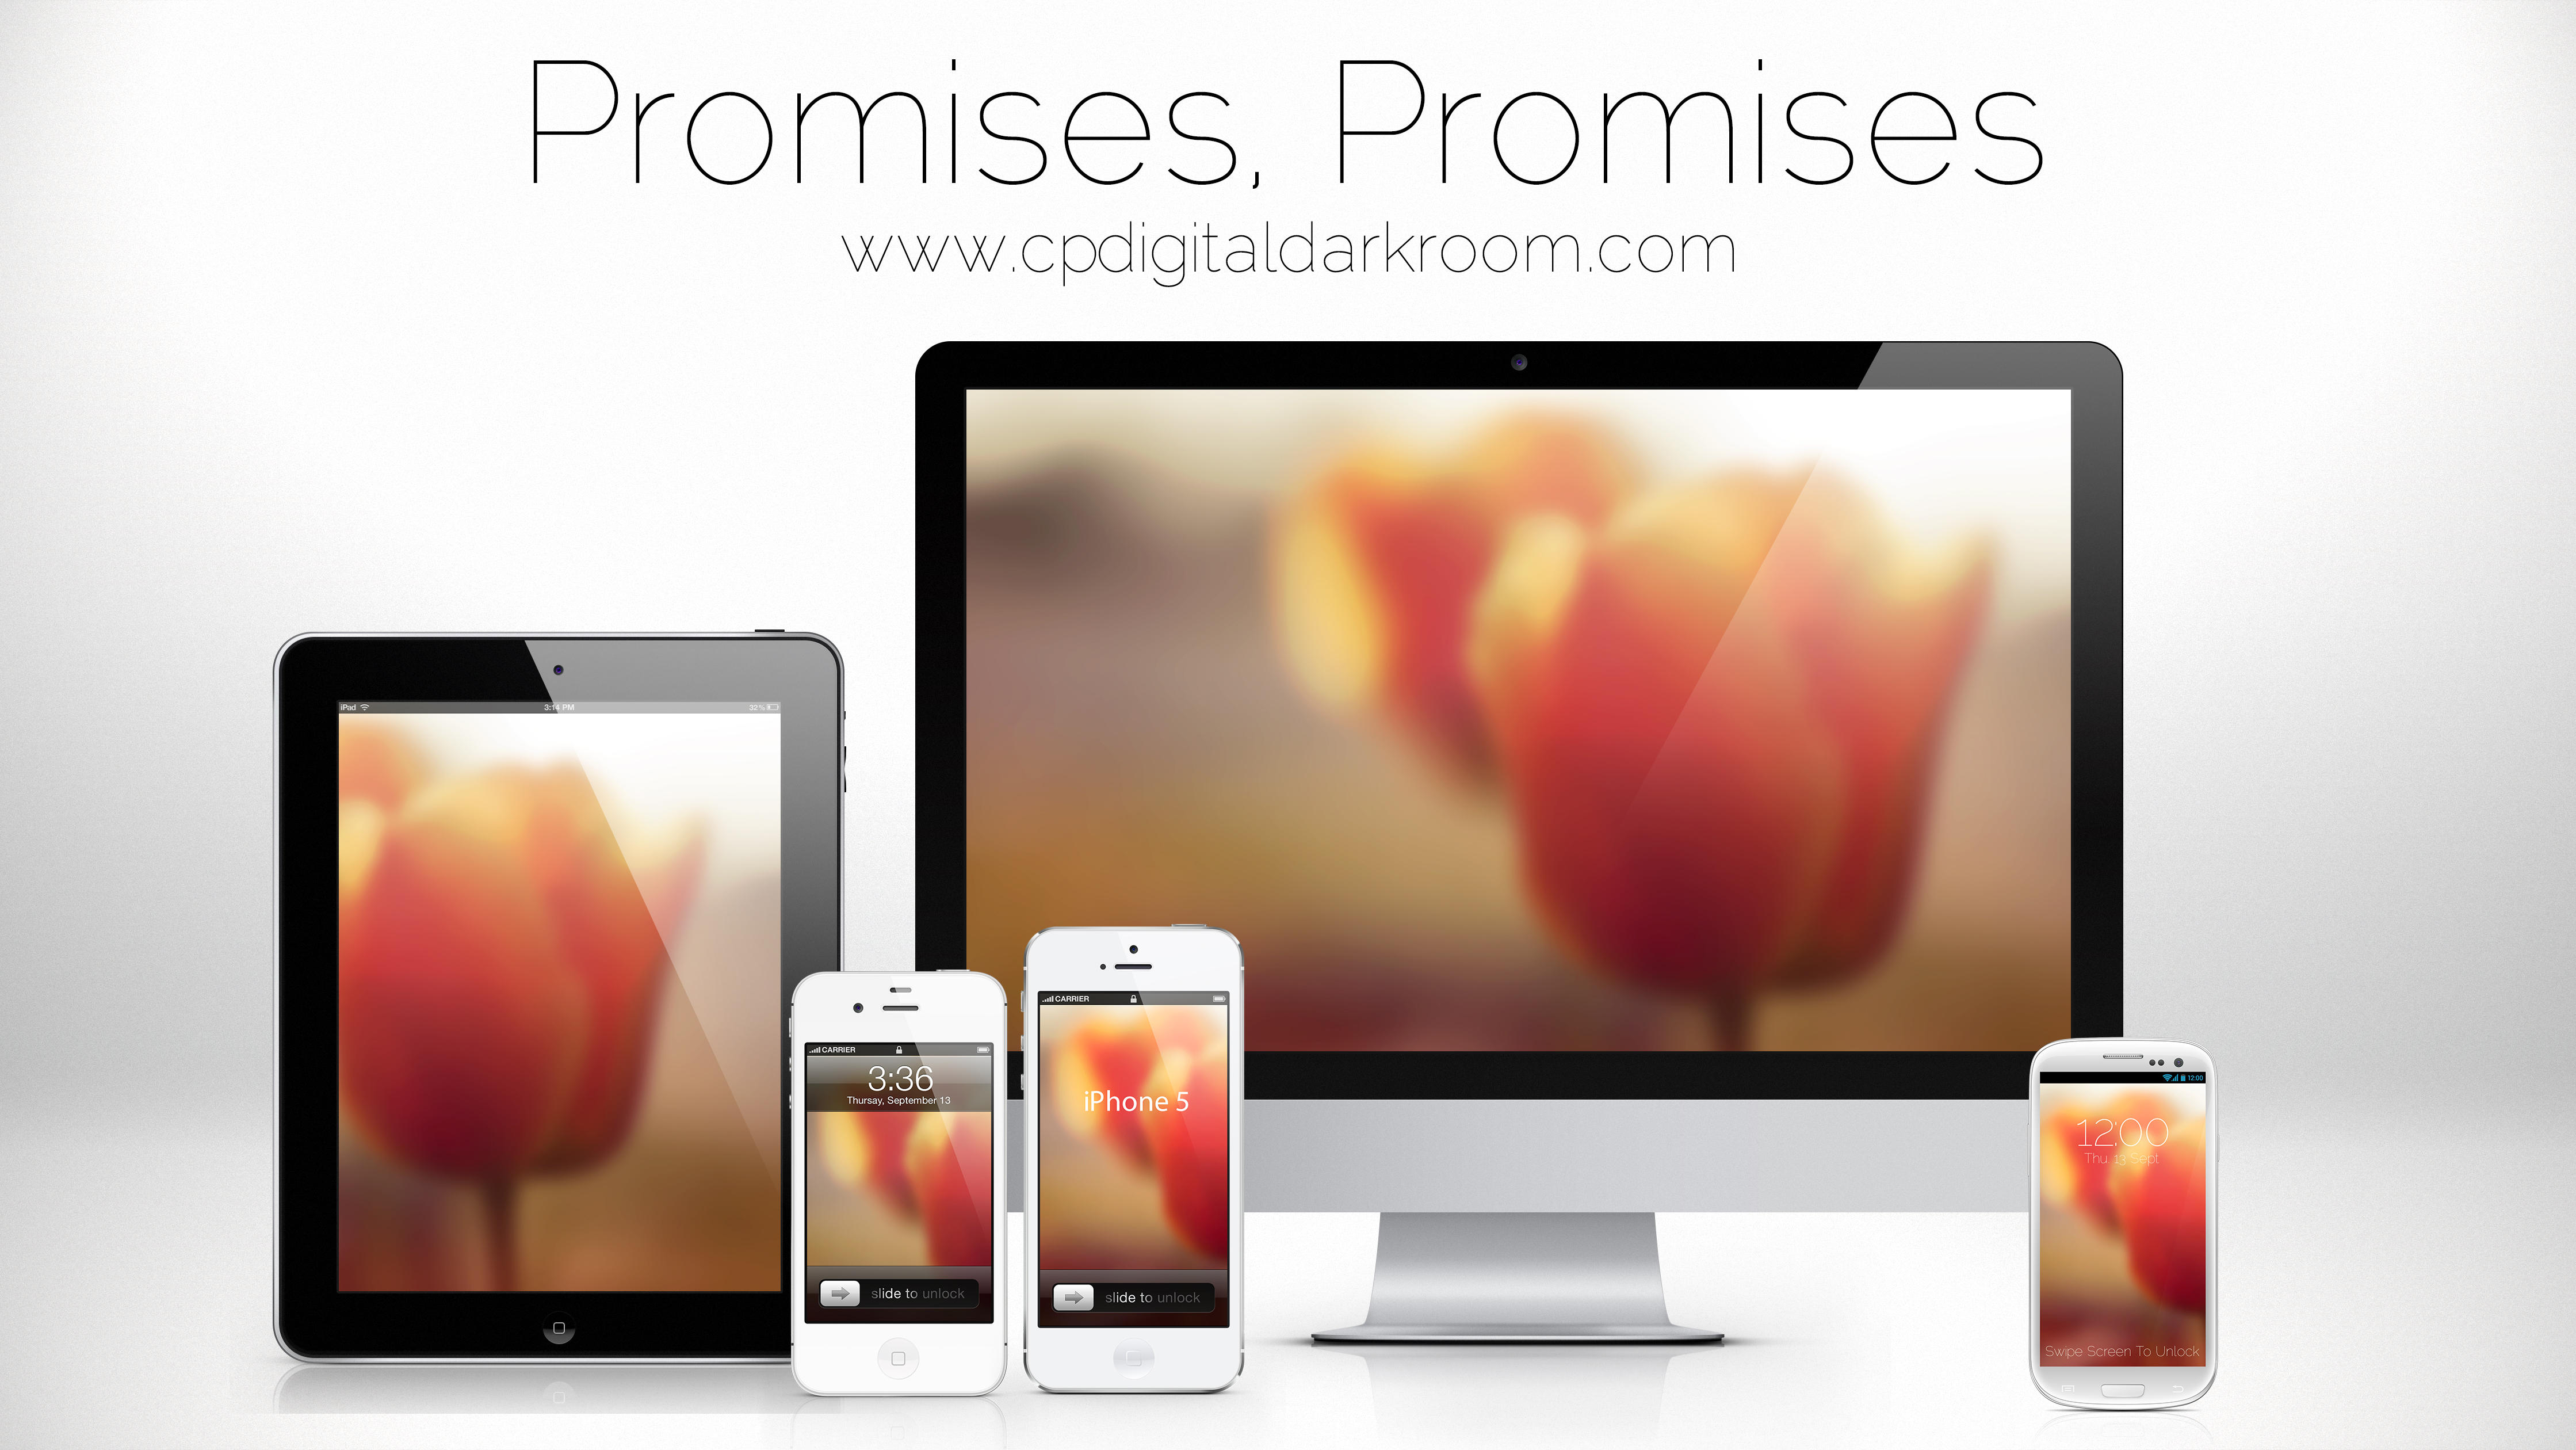 Promises, Promises Wallpaper Pack by CPDigitalDarkroom